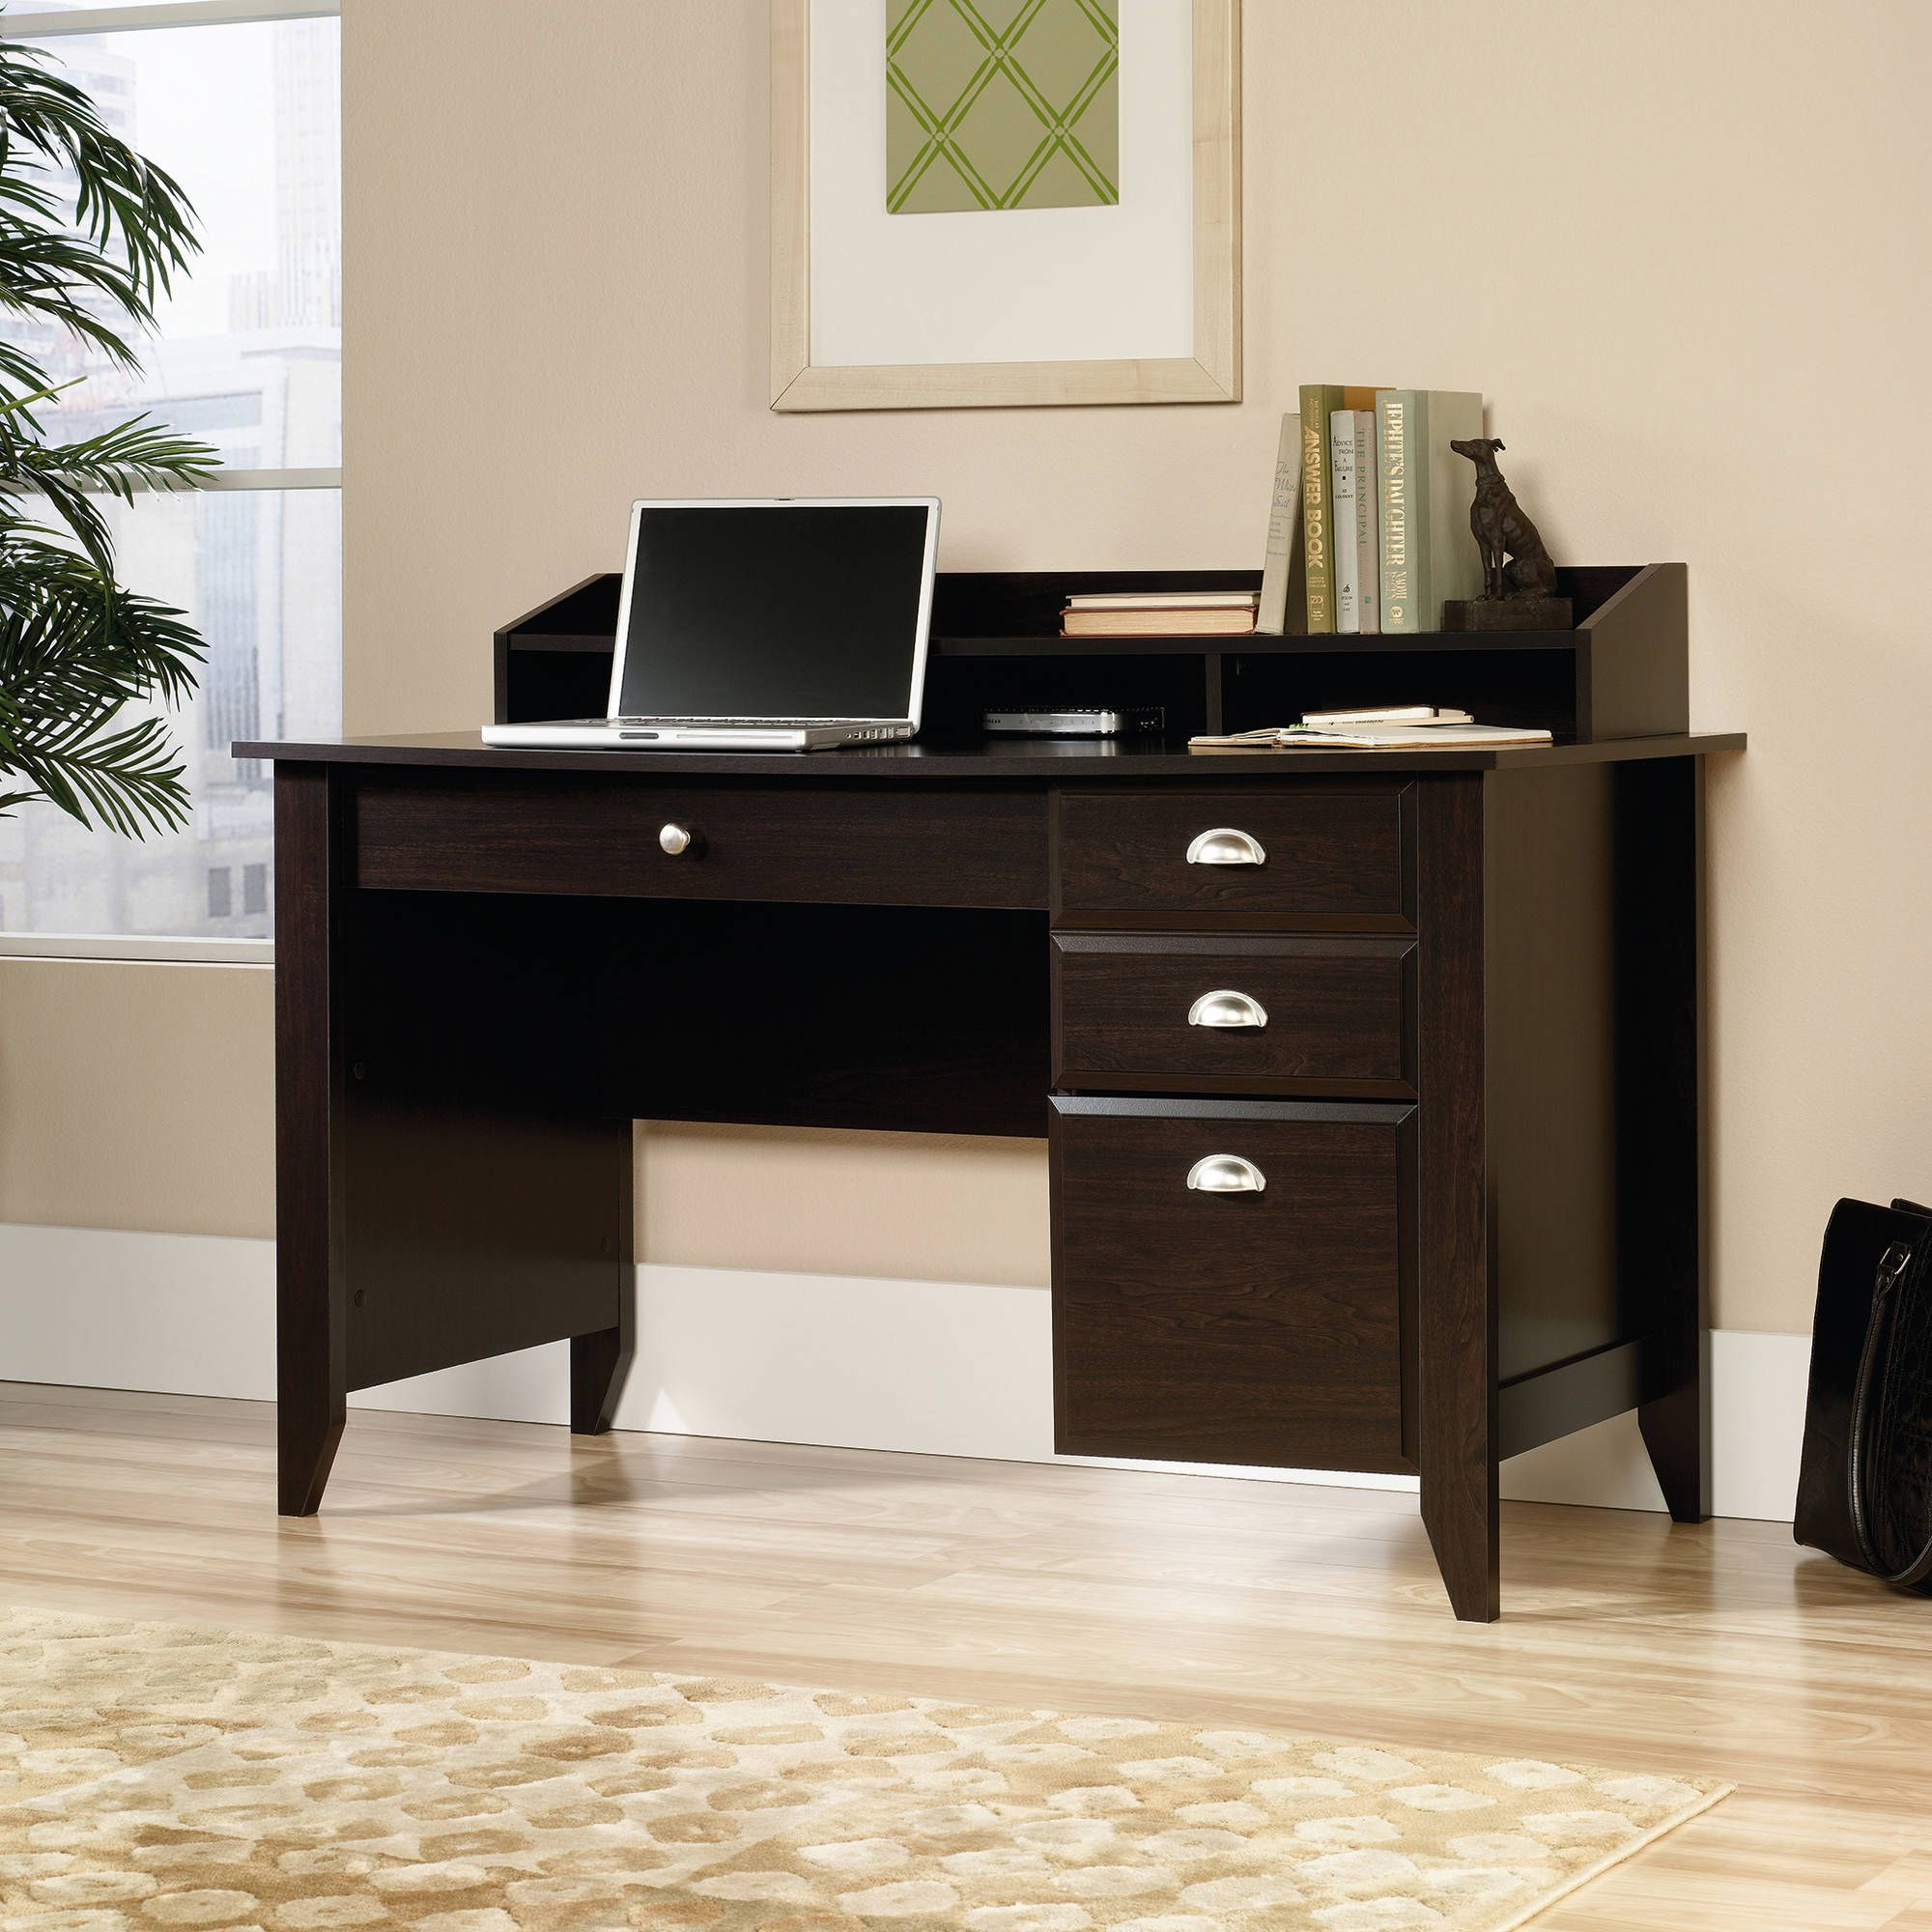 walmart office desk. Office Desk Furniture Walmart - Best Home Desks Check More At Http://